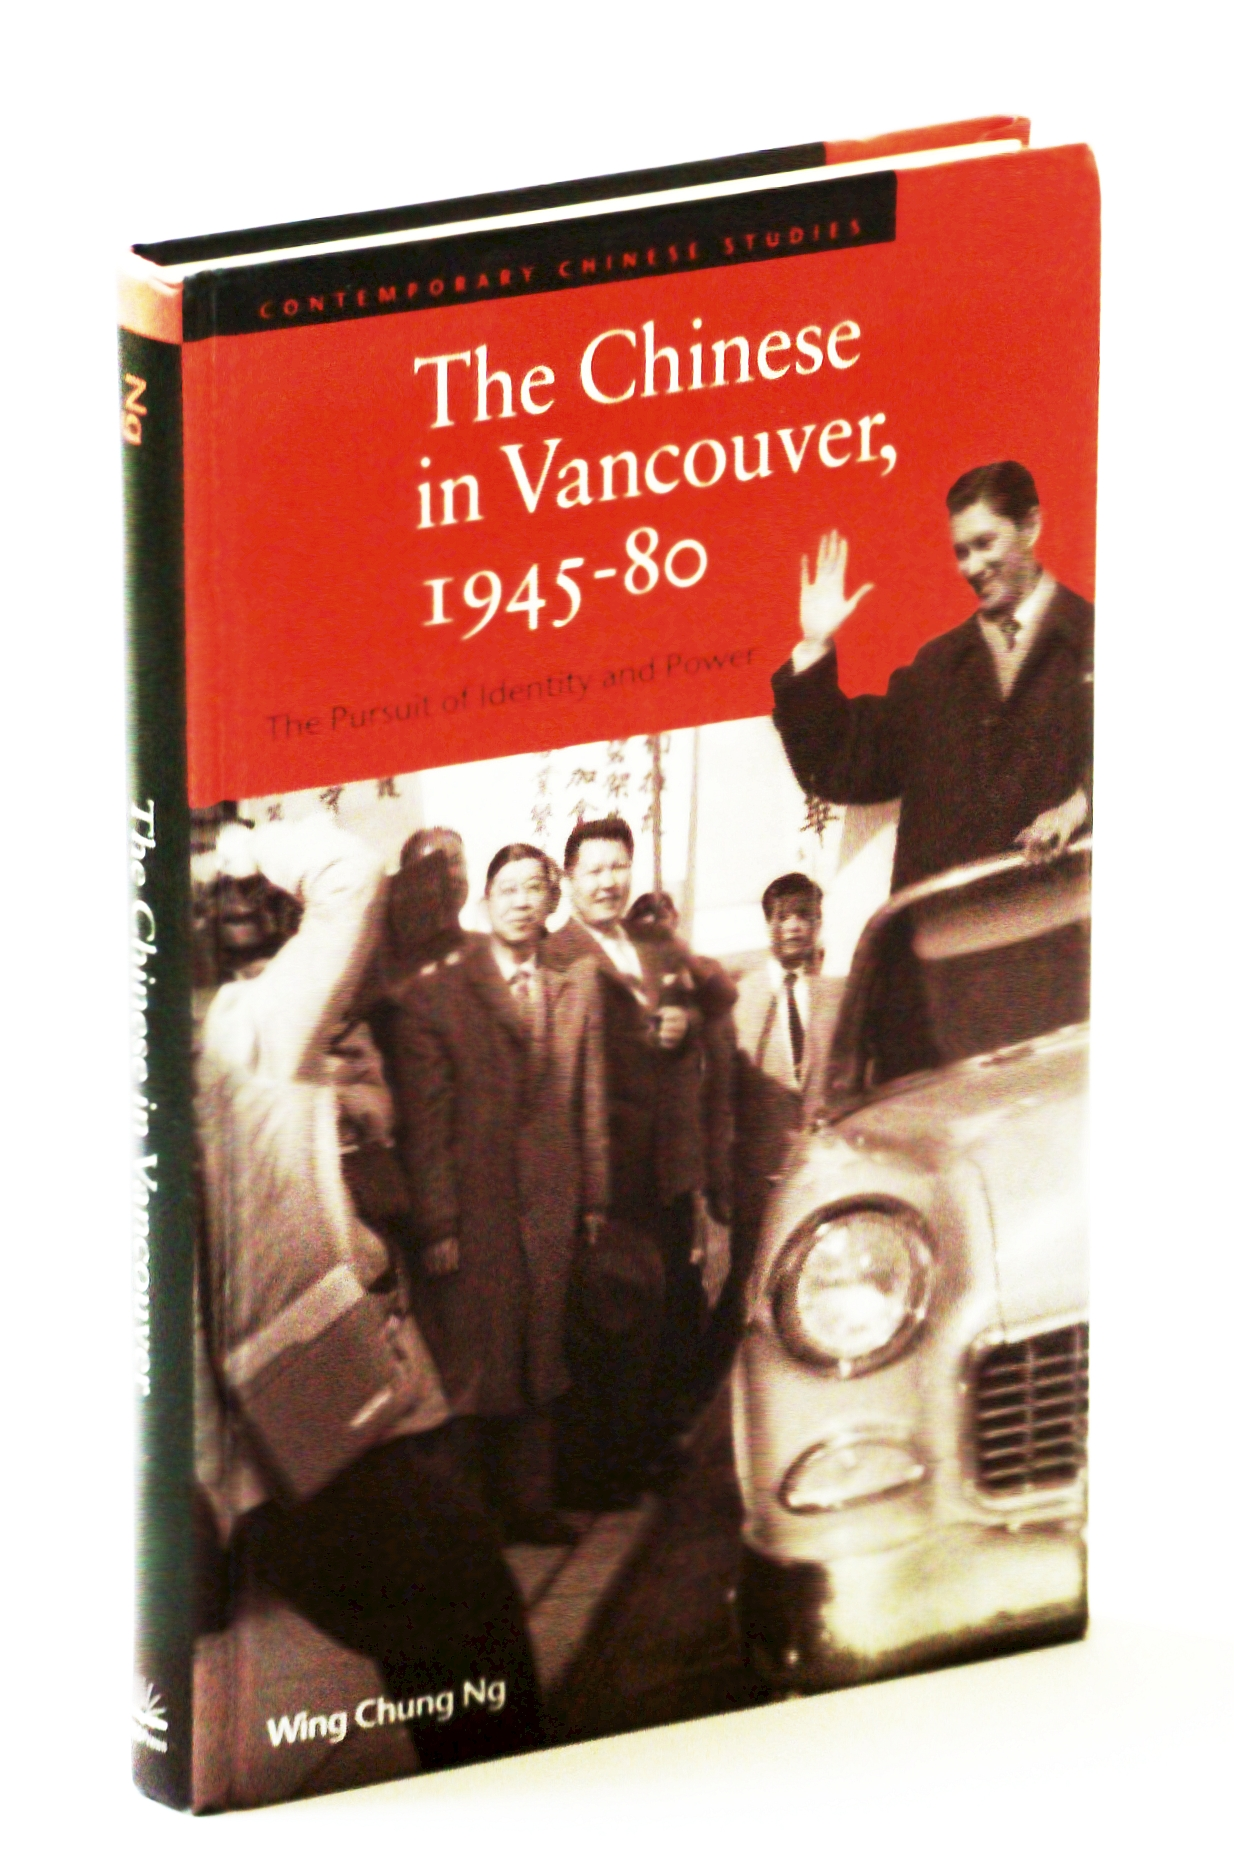 Image for The Chinese in Vancouver, 1945--80: The Pursuit of Identity and Power (Contemporary Chinese Studies Series)